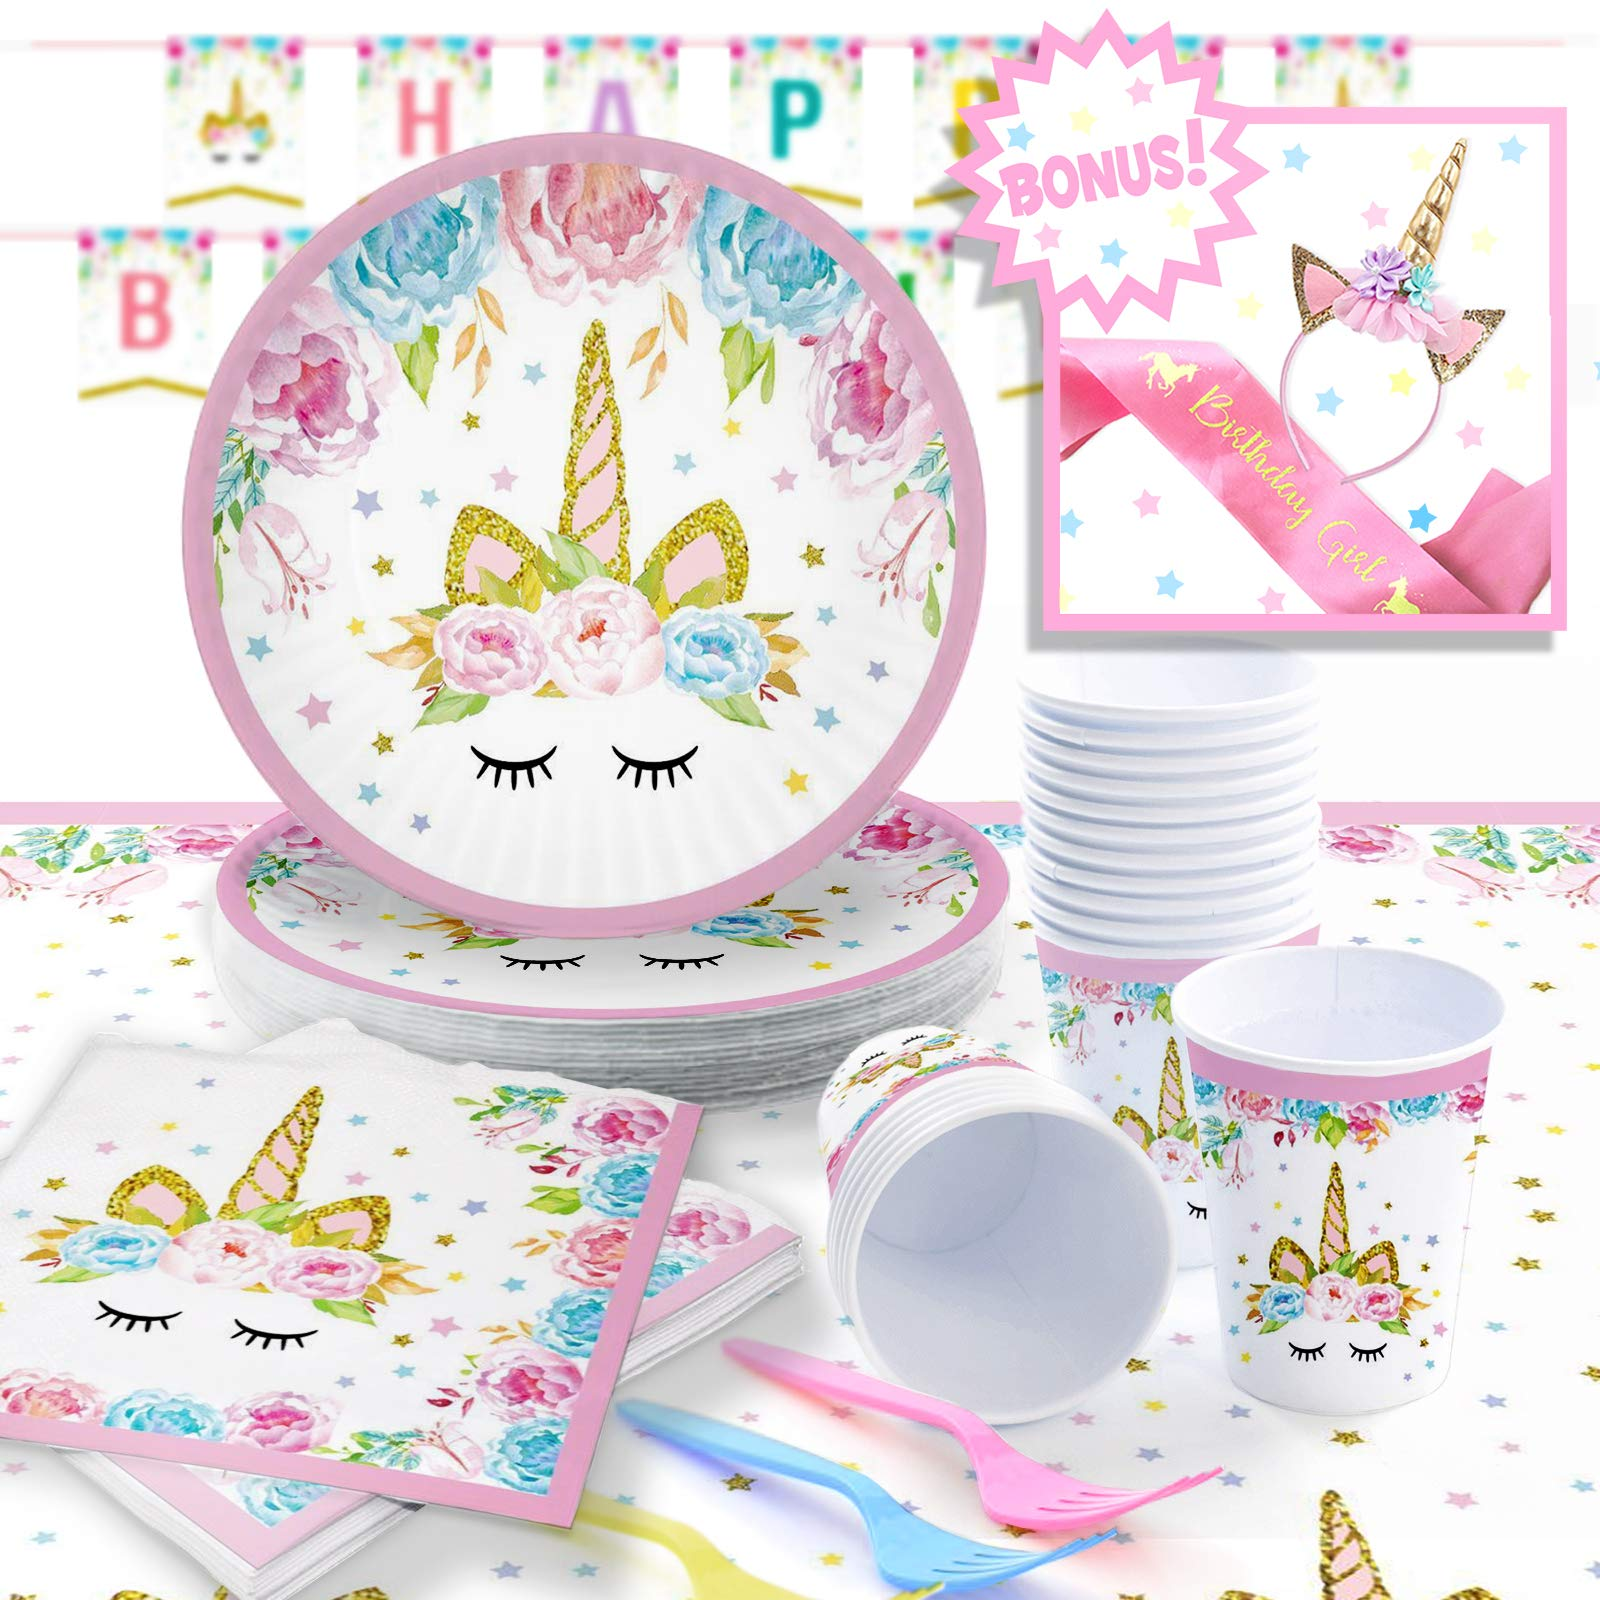 Unicorn Party Supplies Set with BONUS Unicorn Birthday Headband and Sash - Serves 16 - by Pippin Products